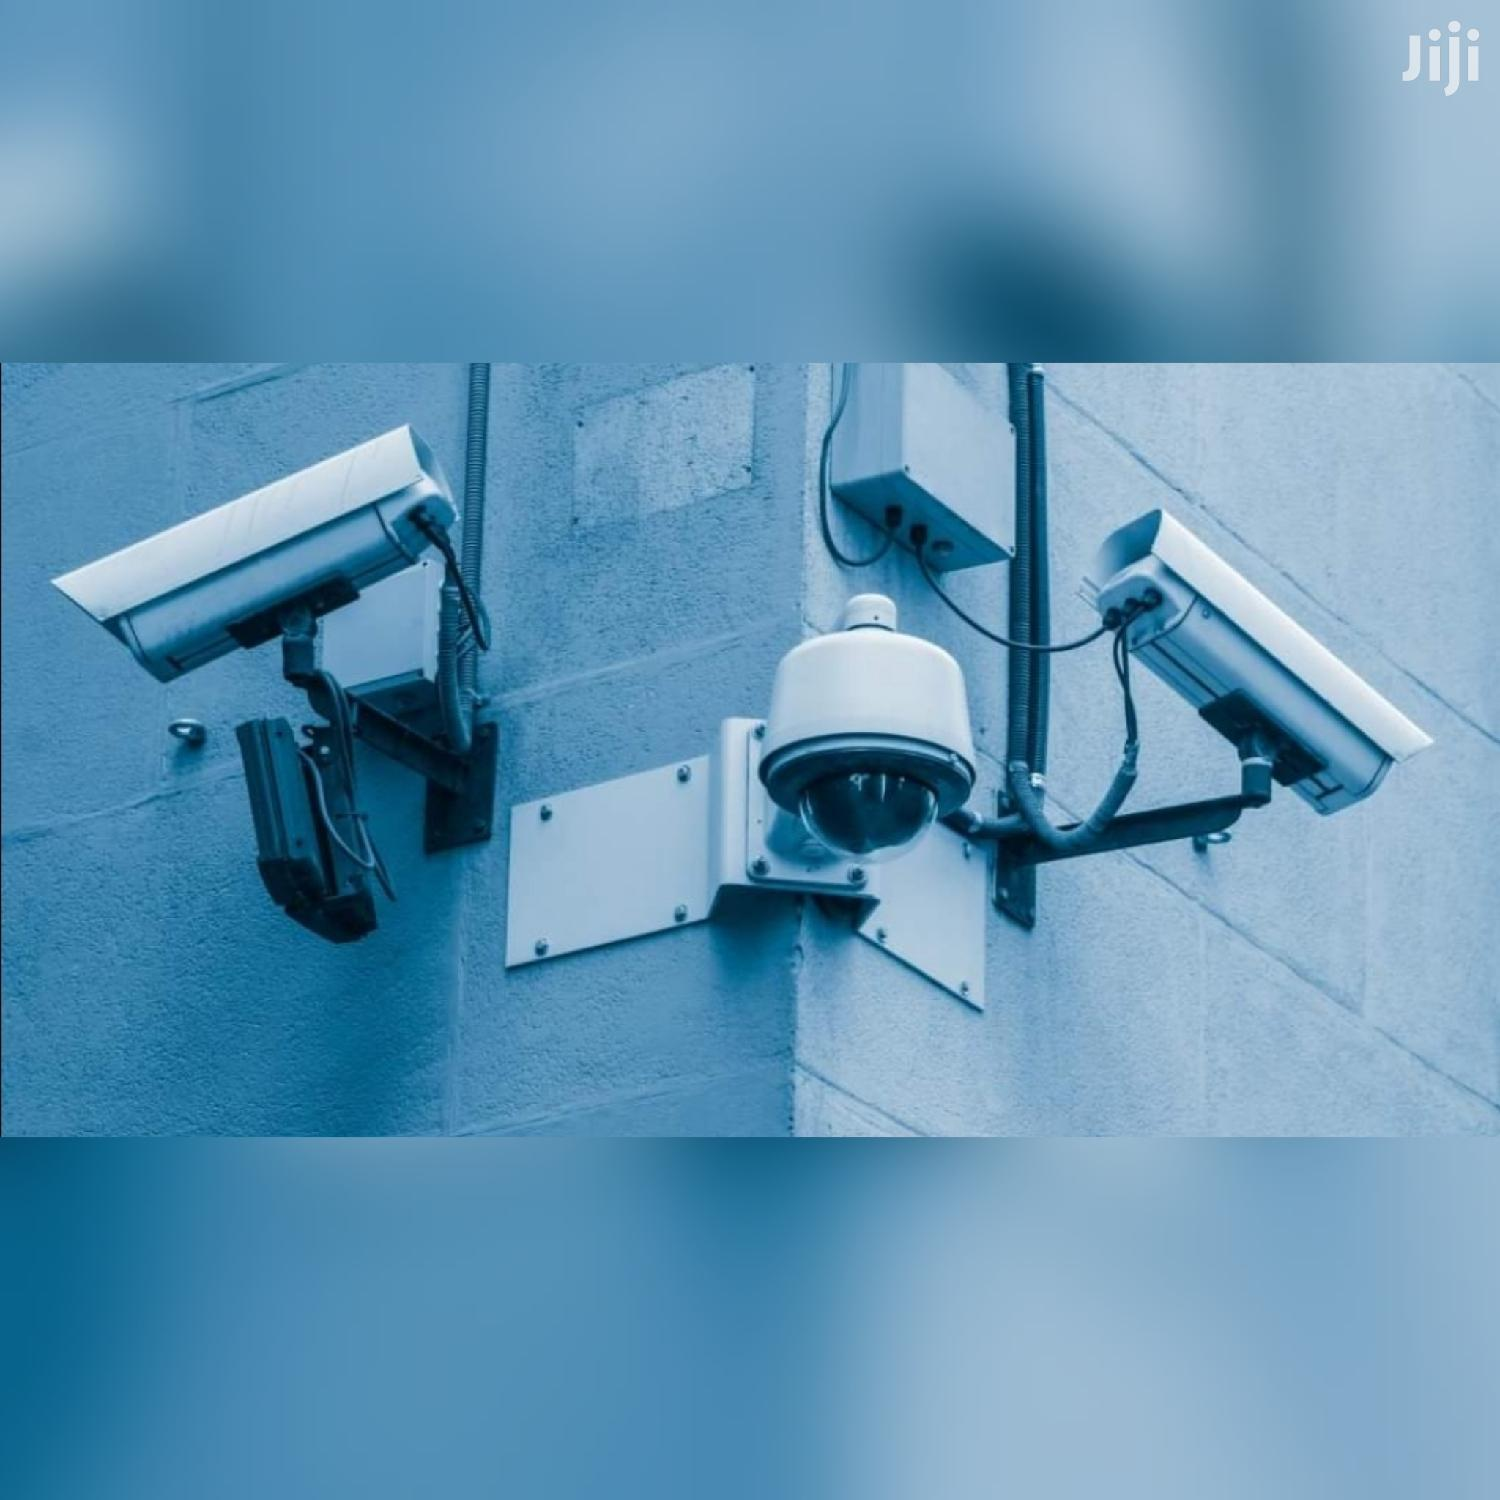 Cctv Installation | Building & Trades Services for sale in Accra Metropolitan, Greater Accra, Ghana